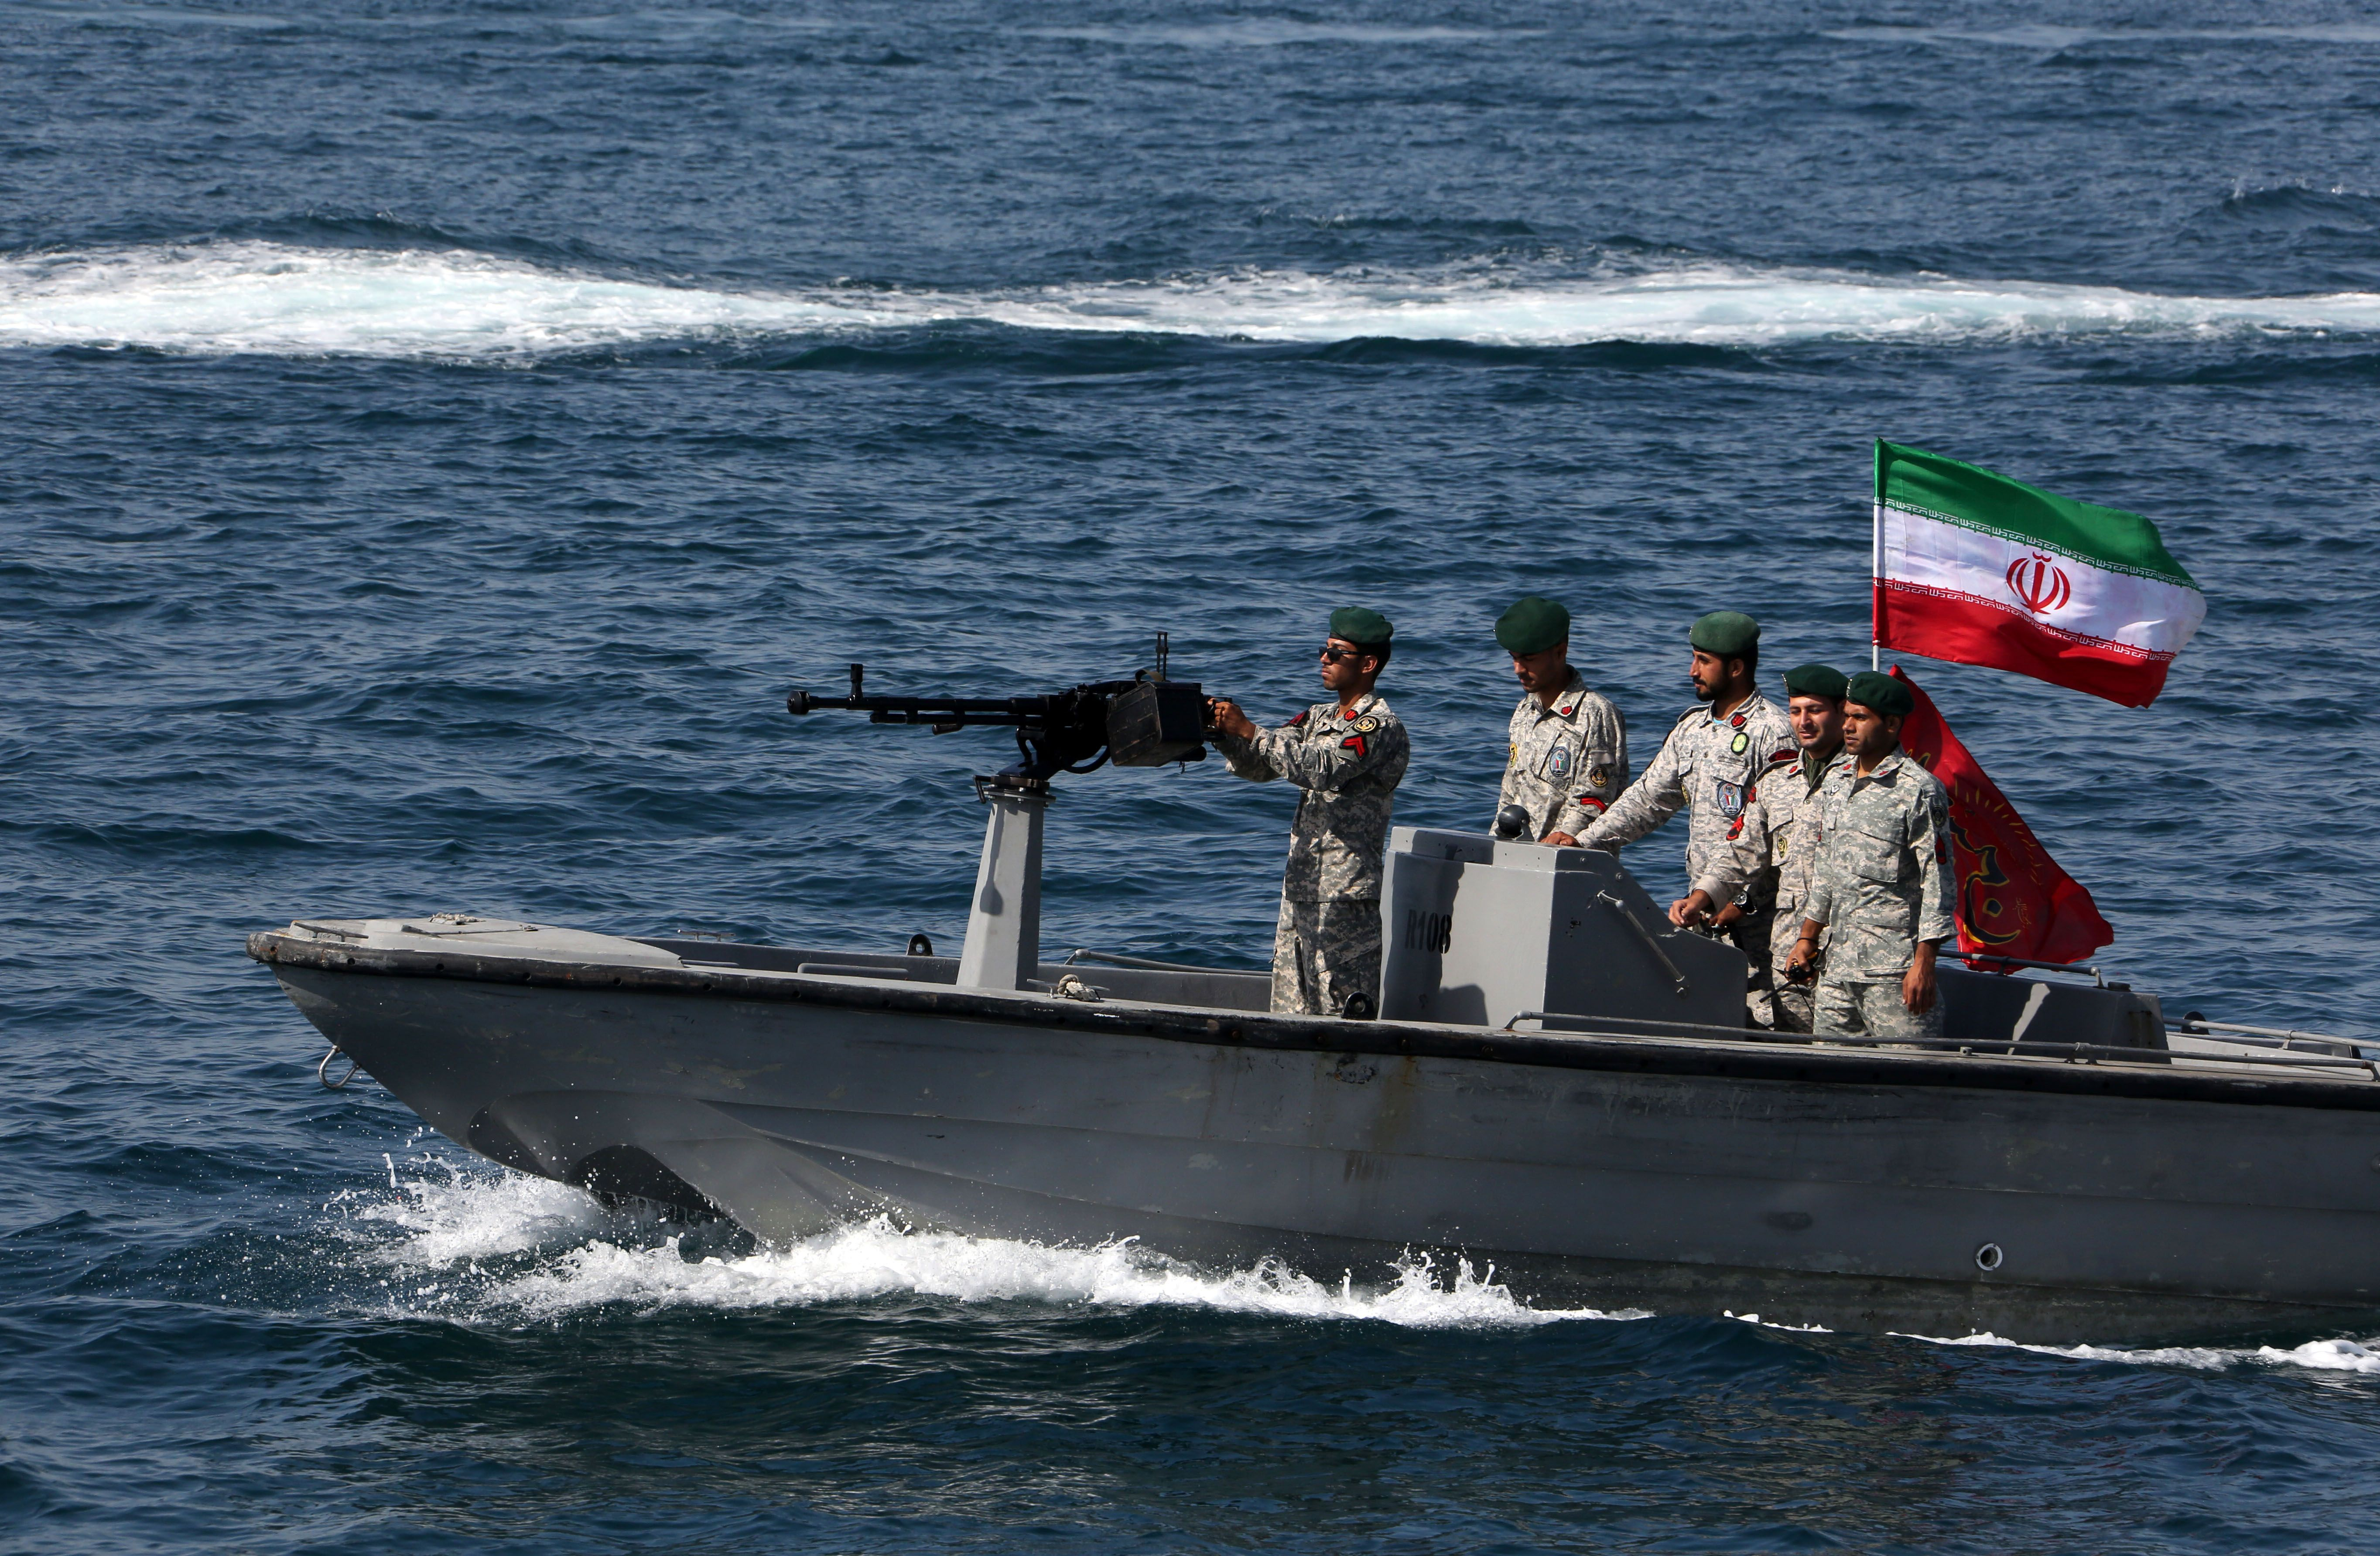 "Iranian soldiers take part in the ""National Persian Gulf day"" in the Strait of Hormuz, on April 30, 2019. - The date coincides with the anniversary of a successful military campaign by Shah Abbas the Great of Persia in the 17th century, which drove the Portuguese navy out of the Hormuz Island, after which is named the waterway which separates the Gulf from the Sea of Oman. (Photo by ATTA KENARE / AFP) (Photo credit should read ATTA KENARE/AFP/Getty Images)"